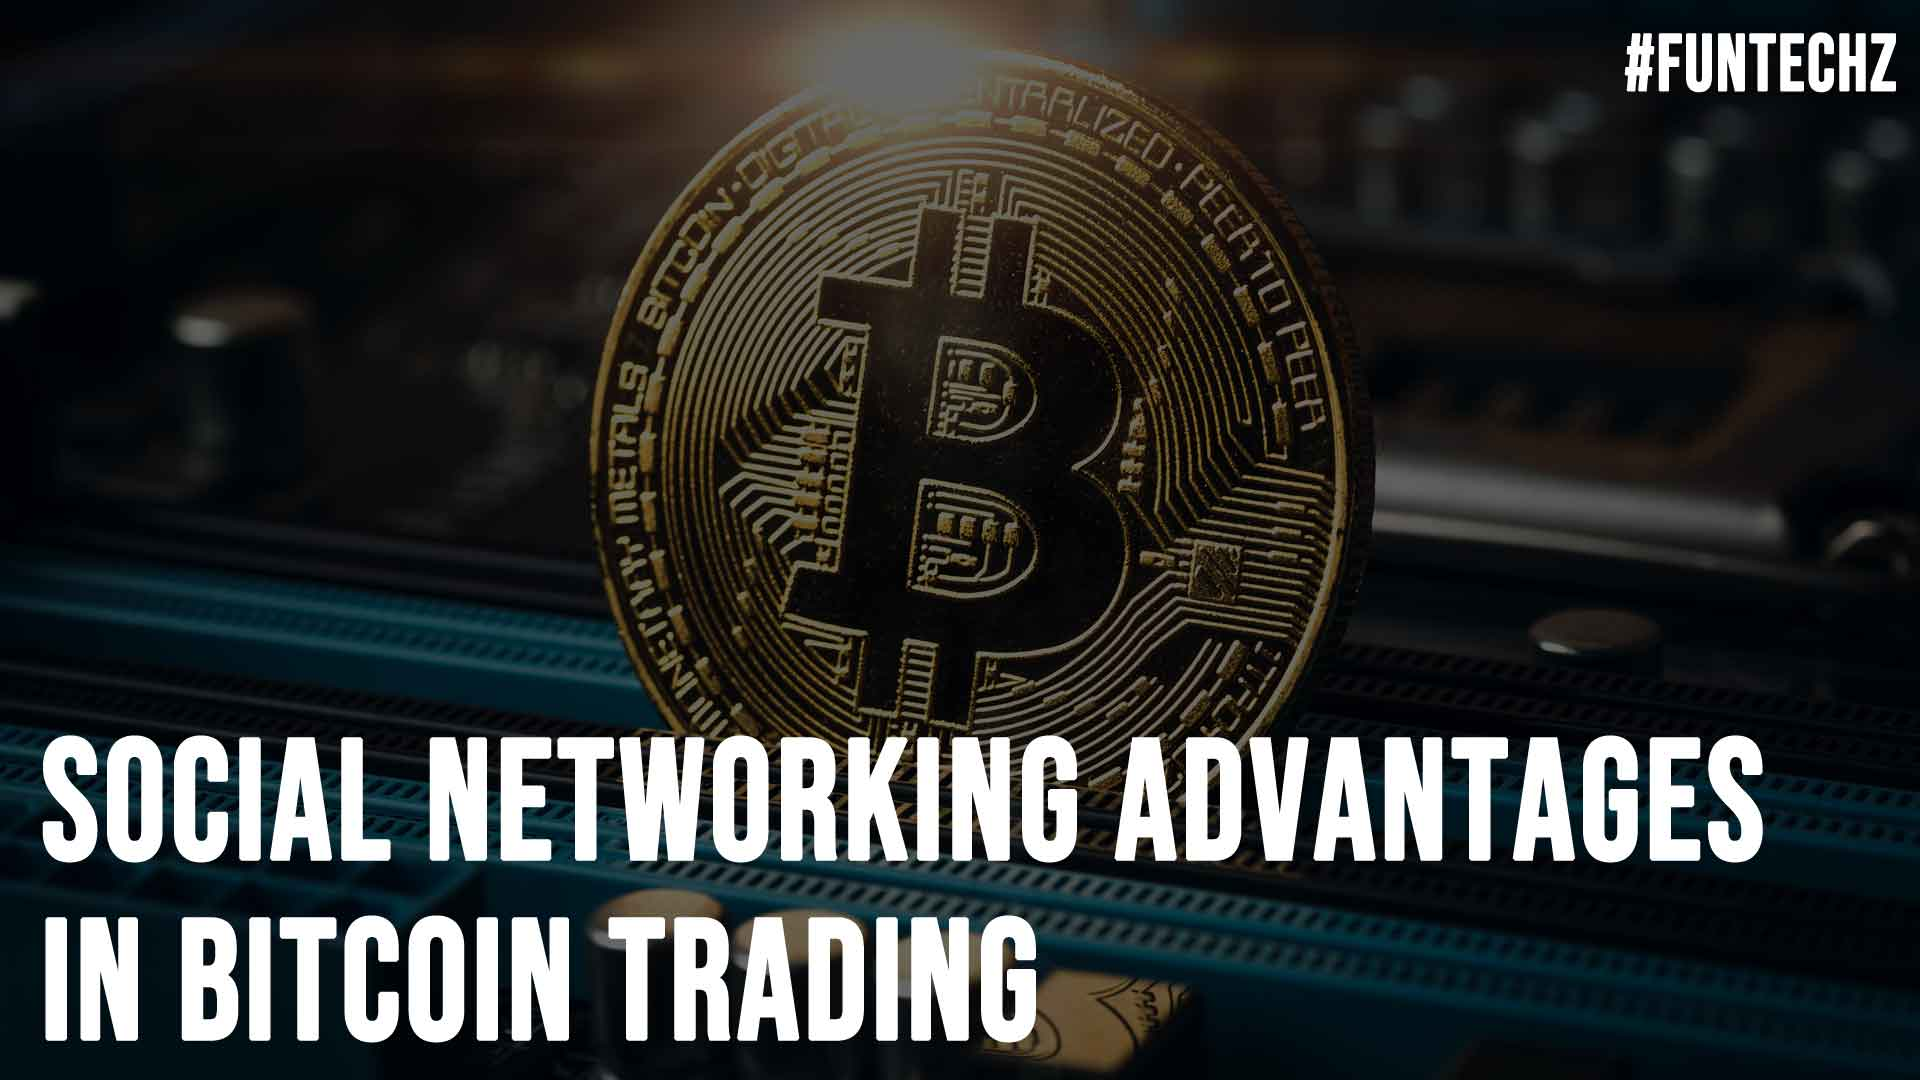 Social Networking Advantages in Bitcoin Trading